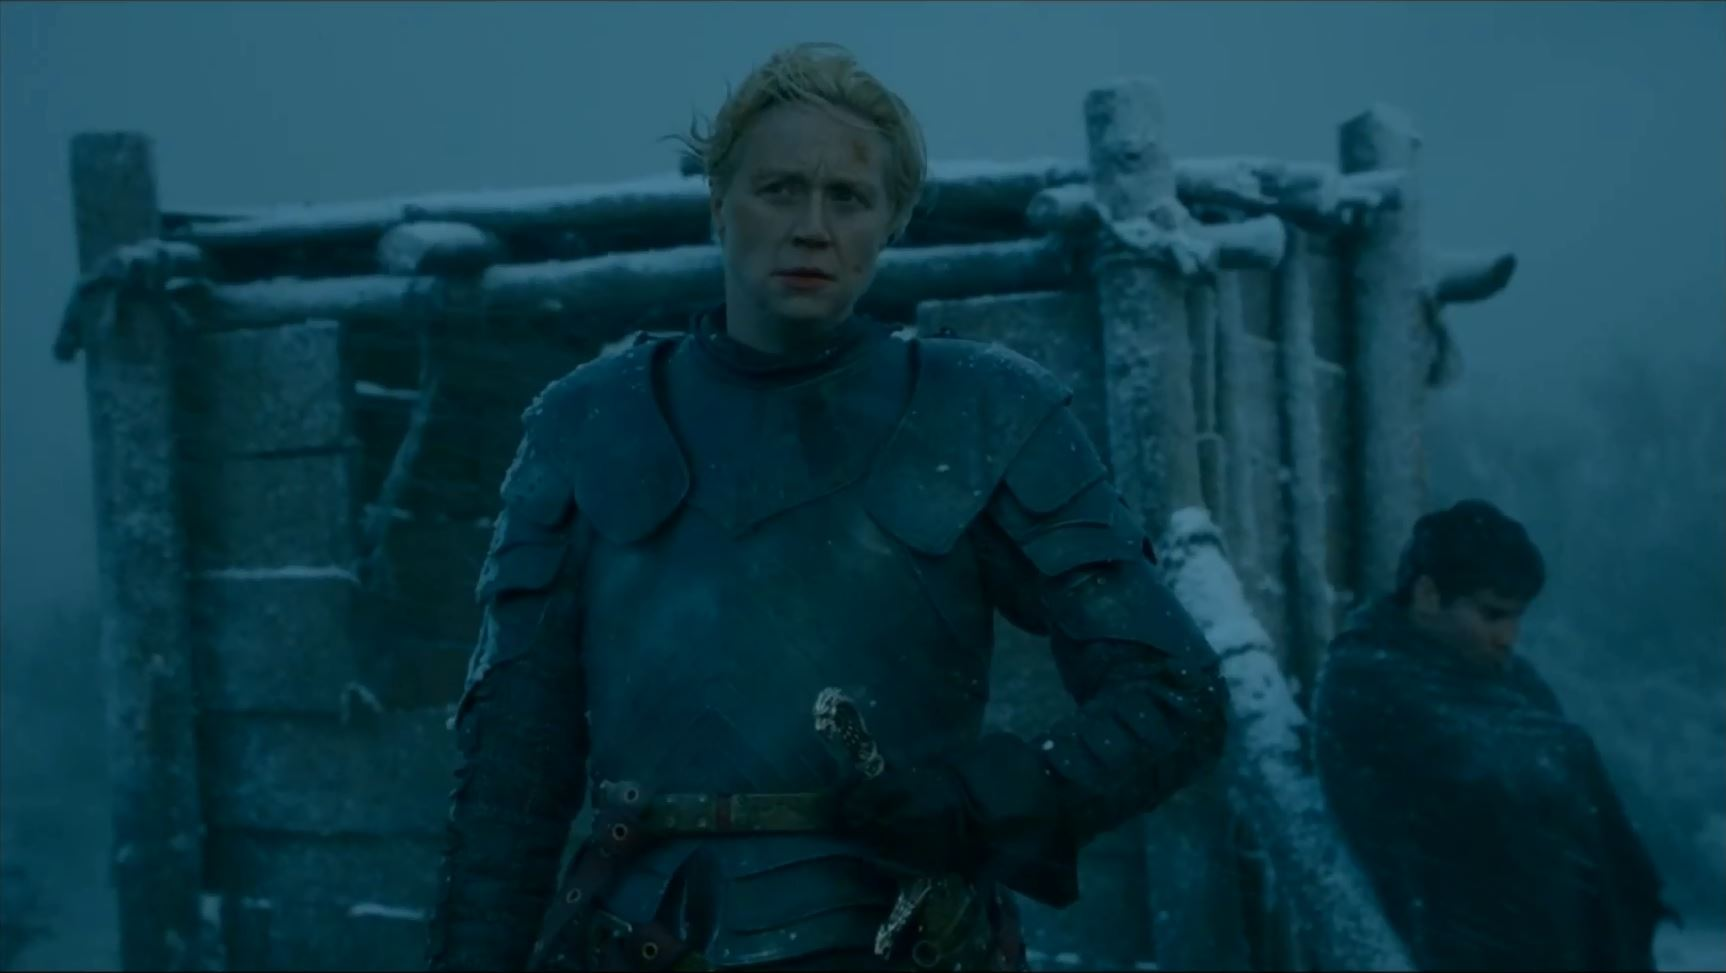 Game of Thrones Season 5 Trailer 2. Gwendoline Christie as Brienne of Tarth